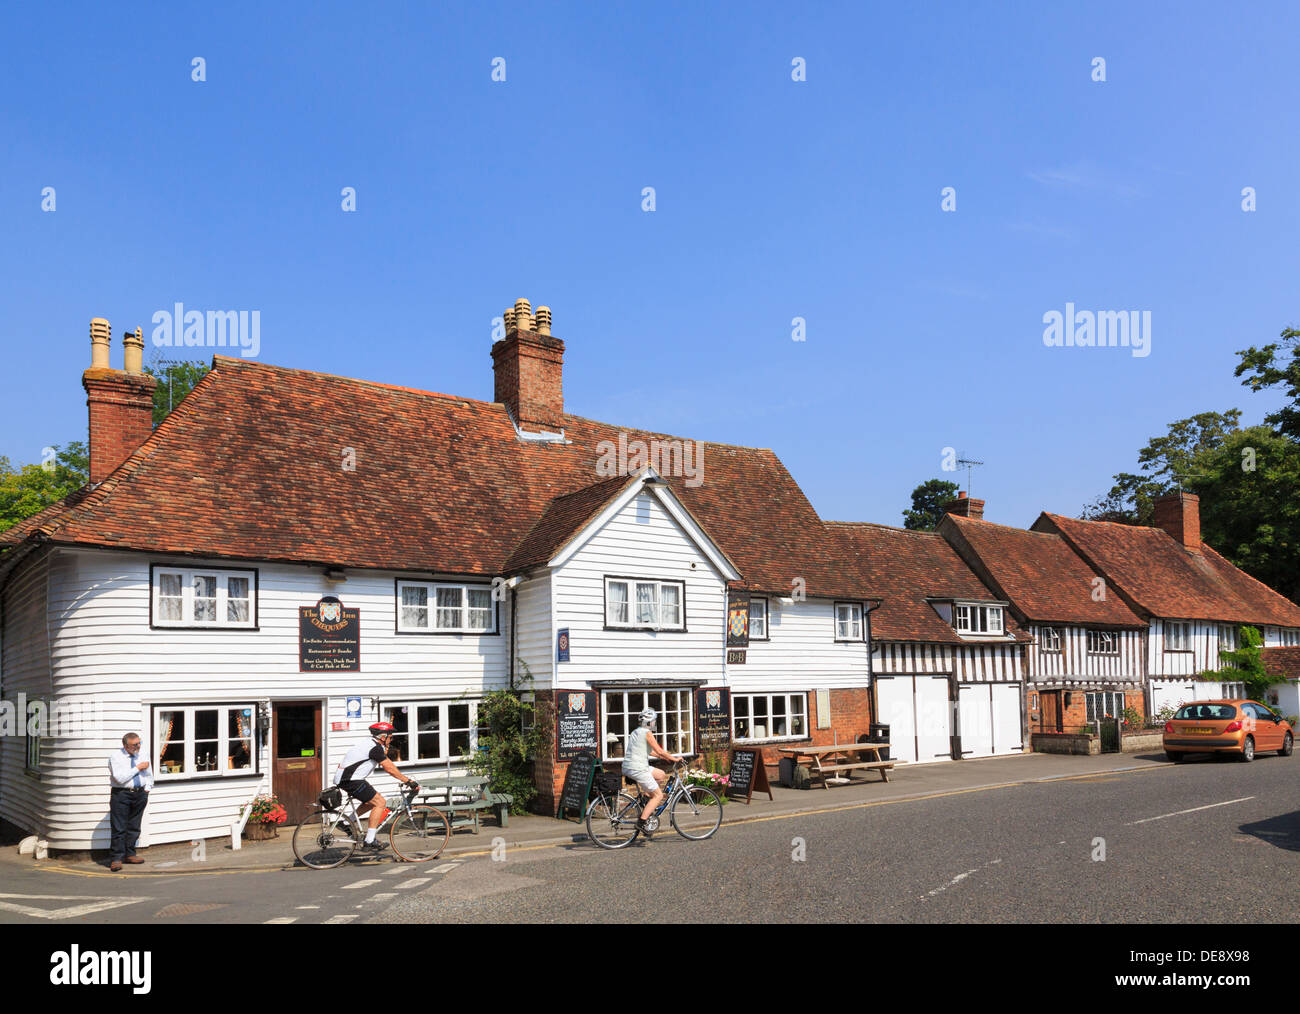 Scene with cyclists outside The Chequers Inn 14thc pub in picturesque English village The Street Smarden Kent England UK Britain - Stock Image